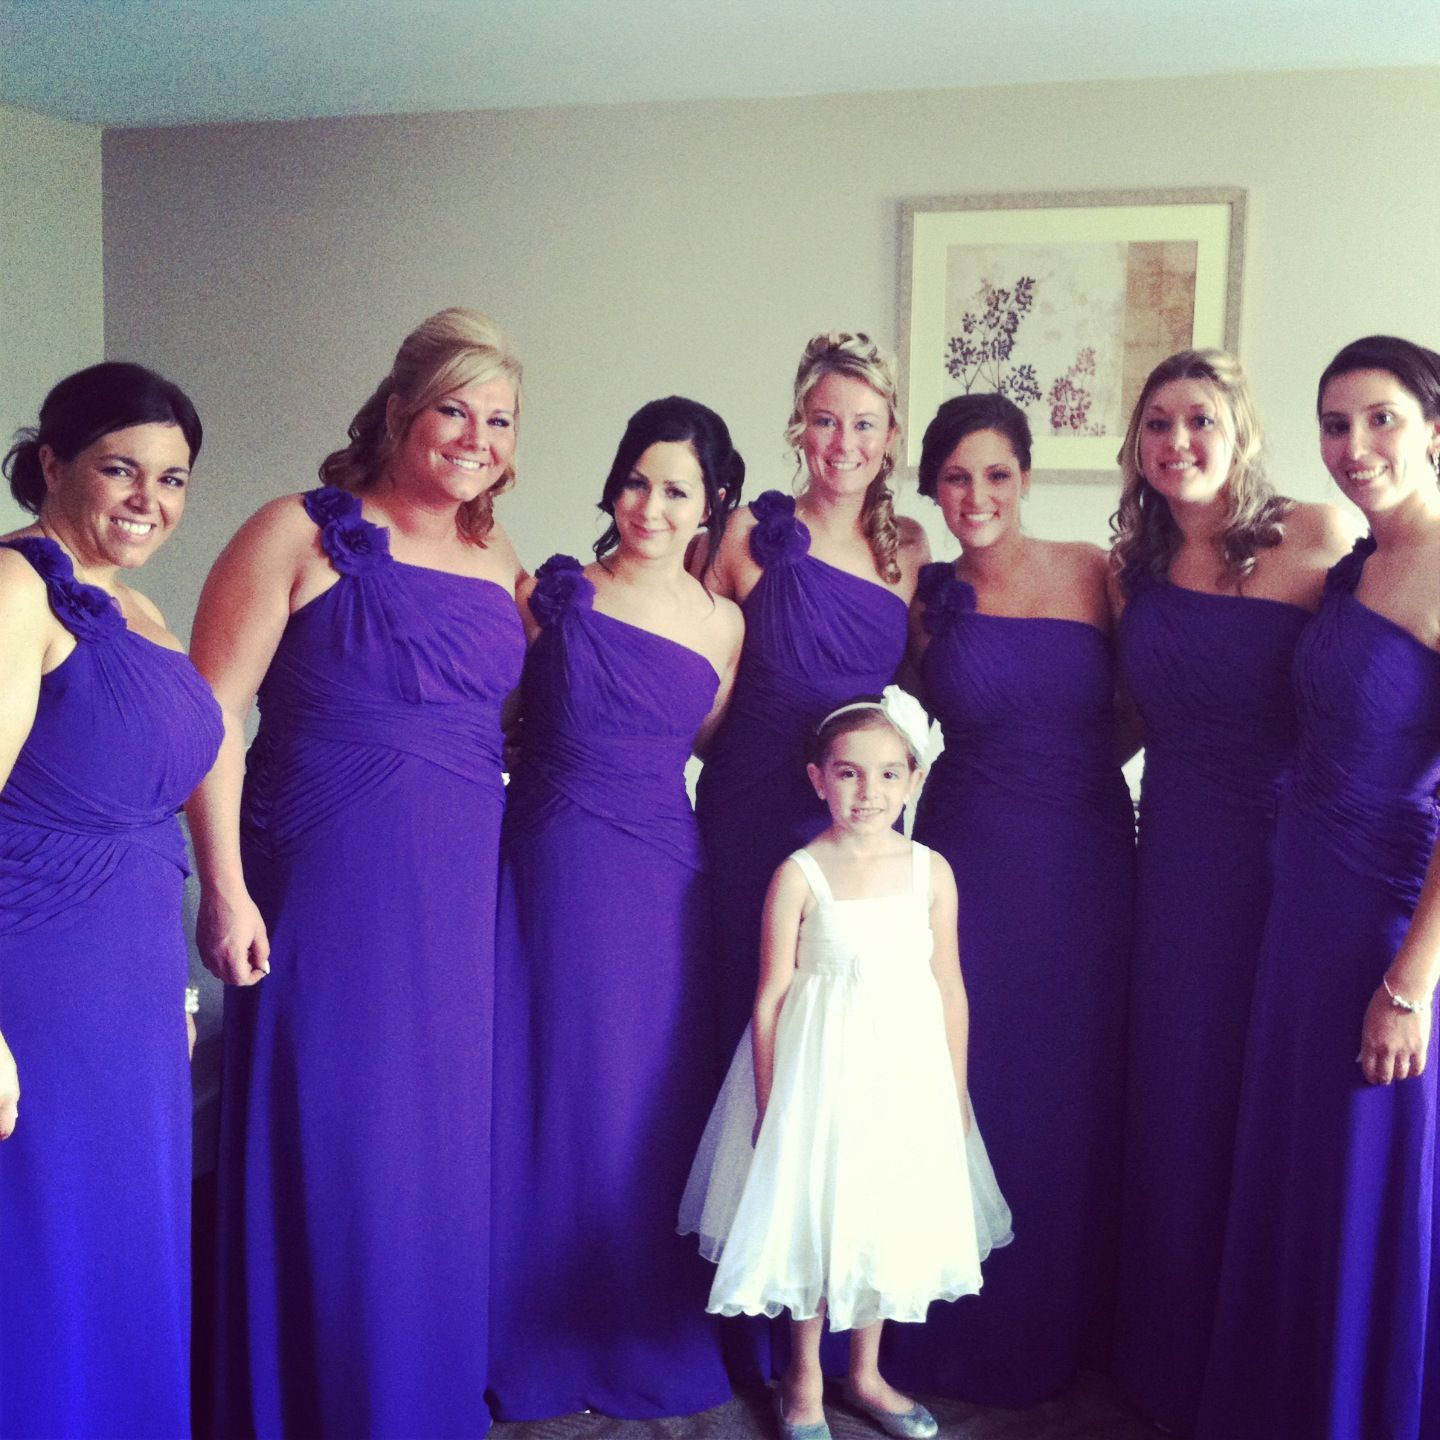 cb7528e1ad7 My bridesmaids in their dresses! Purple regency.  bridesmaids  dresses   wedding  purple  royalpurple  regency  ridolfiwedding July 6